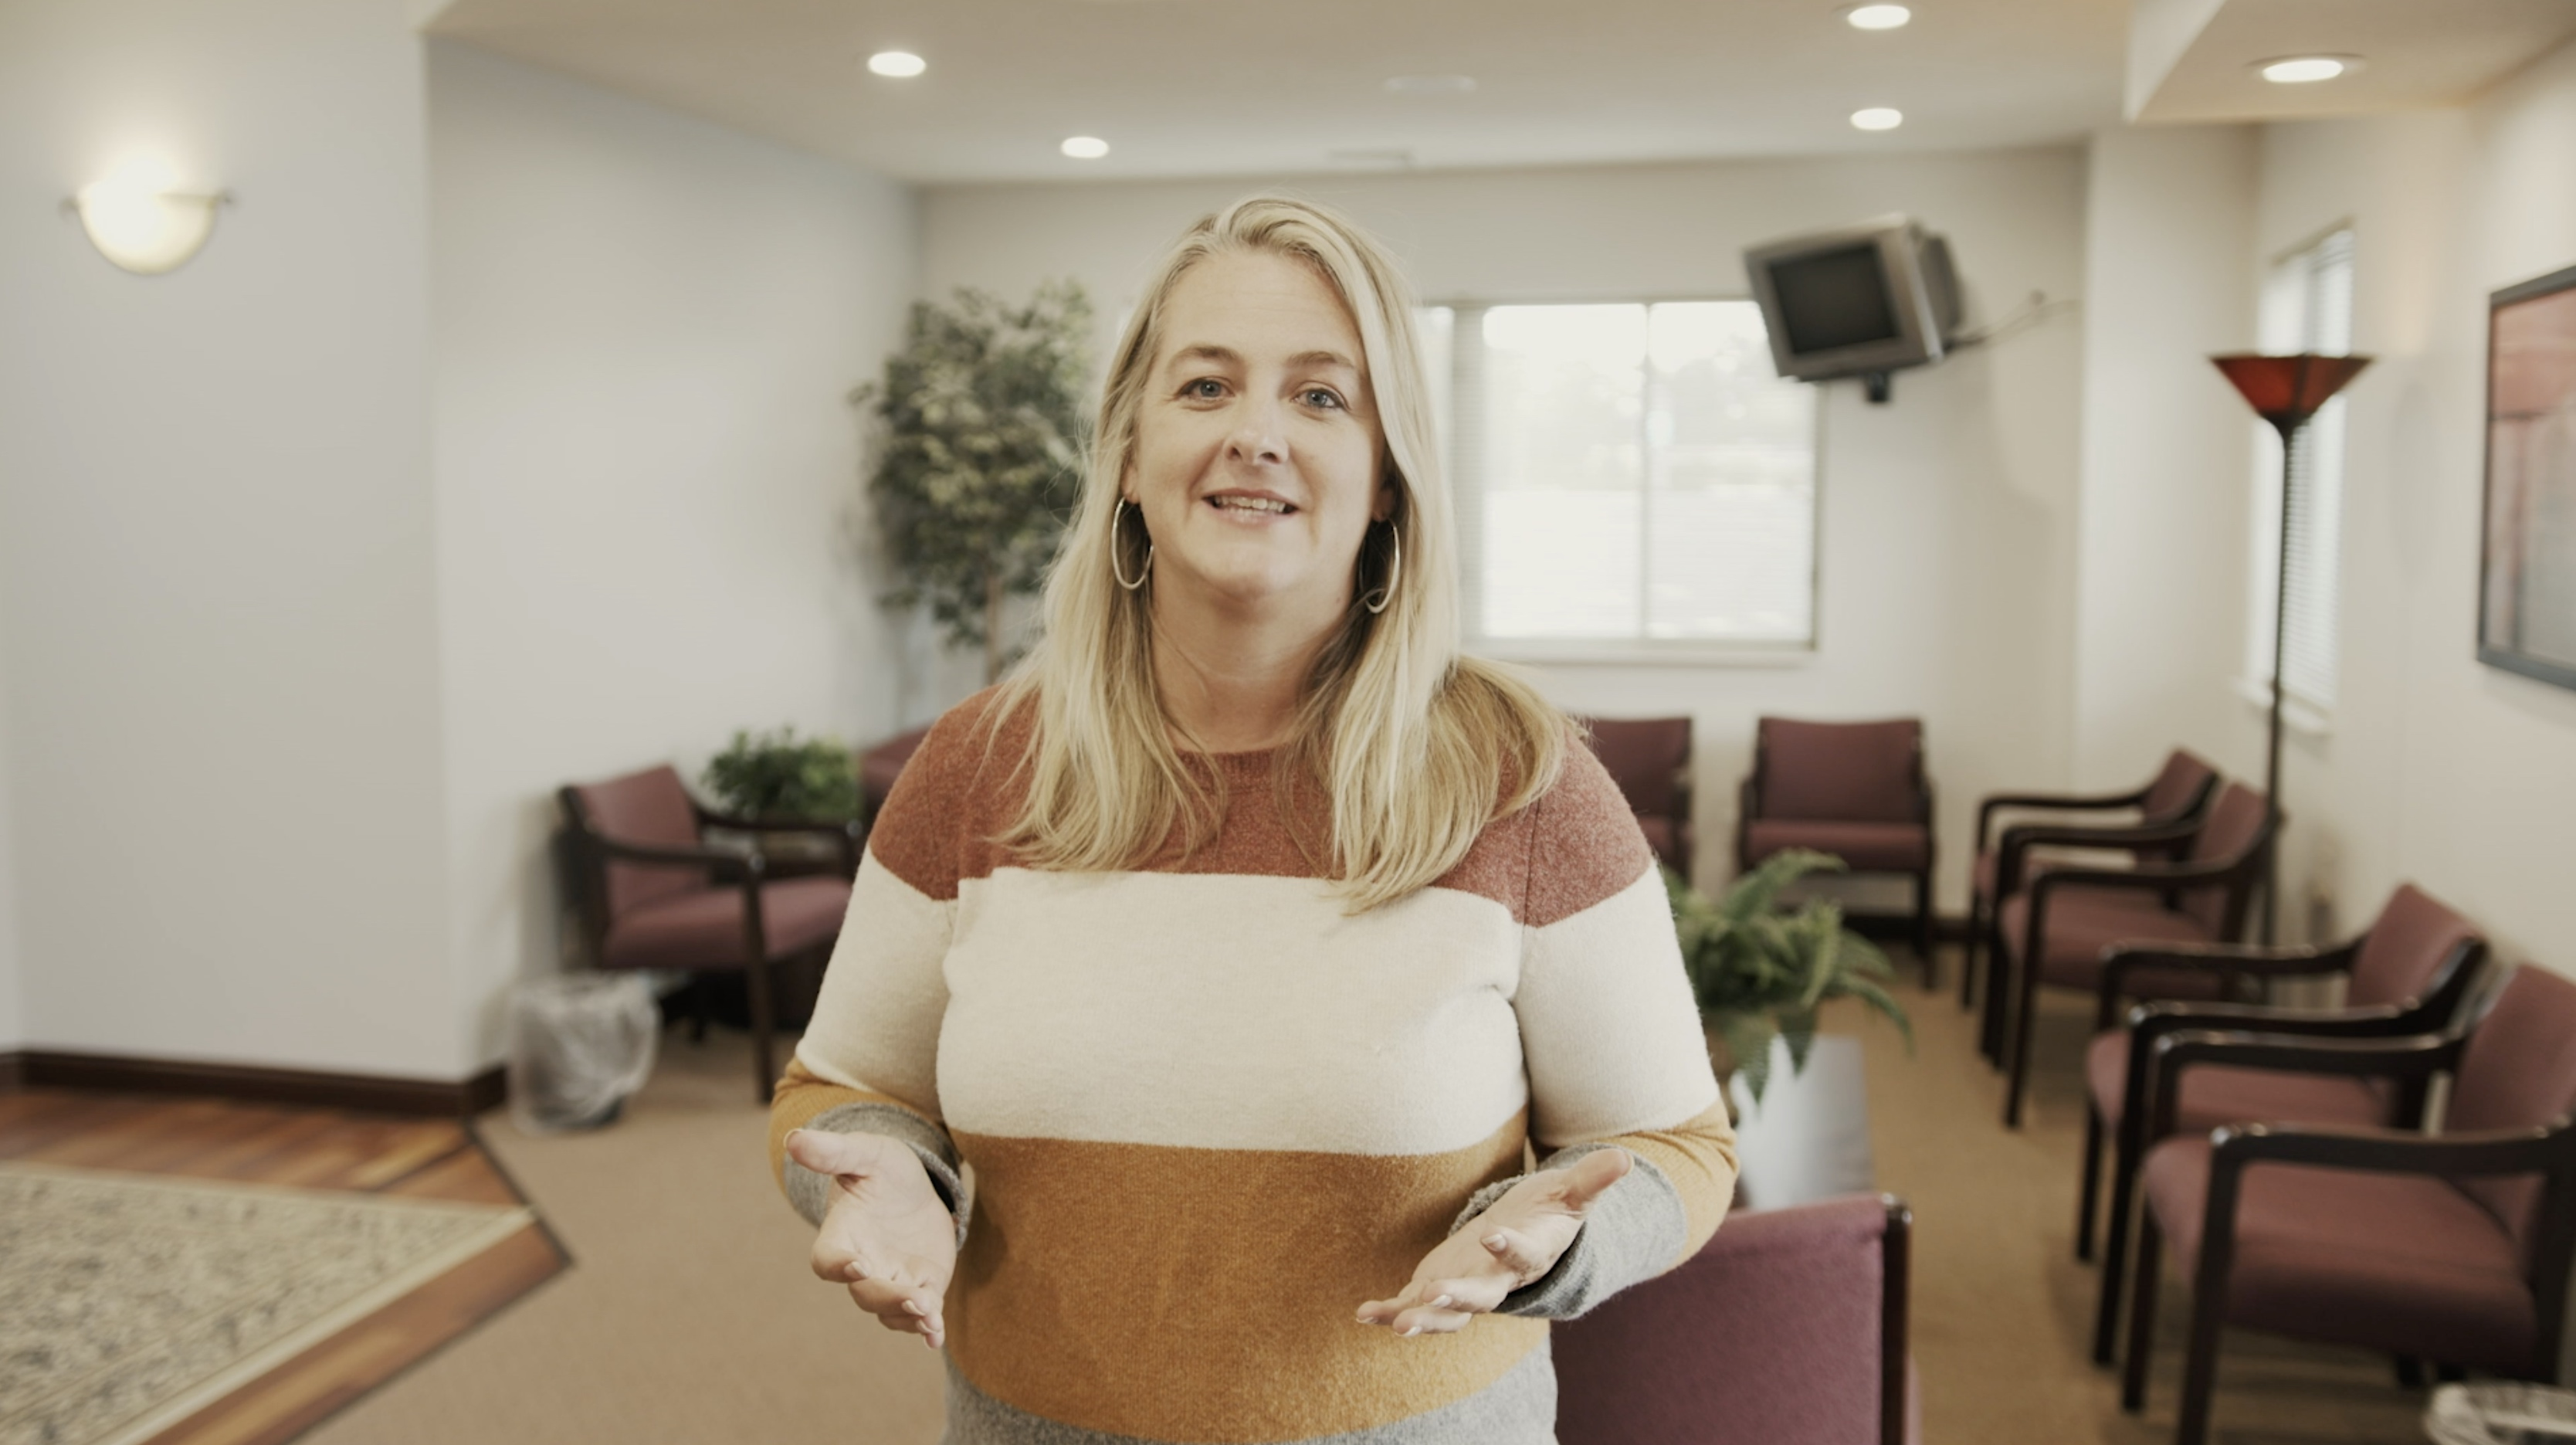 Mendy, the Counseling Center Director, smiles as she welcomes guests to The Counseling Center.